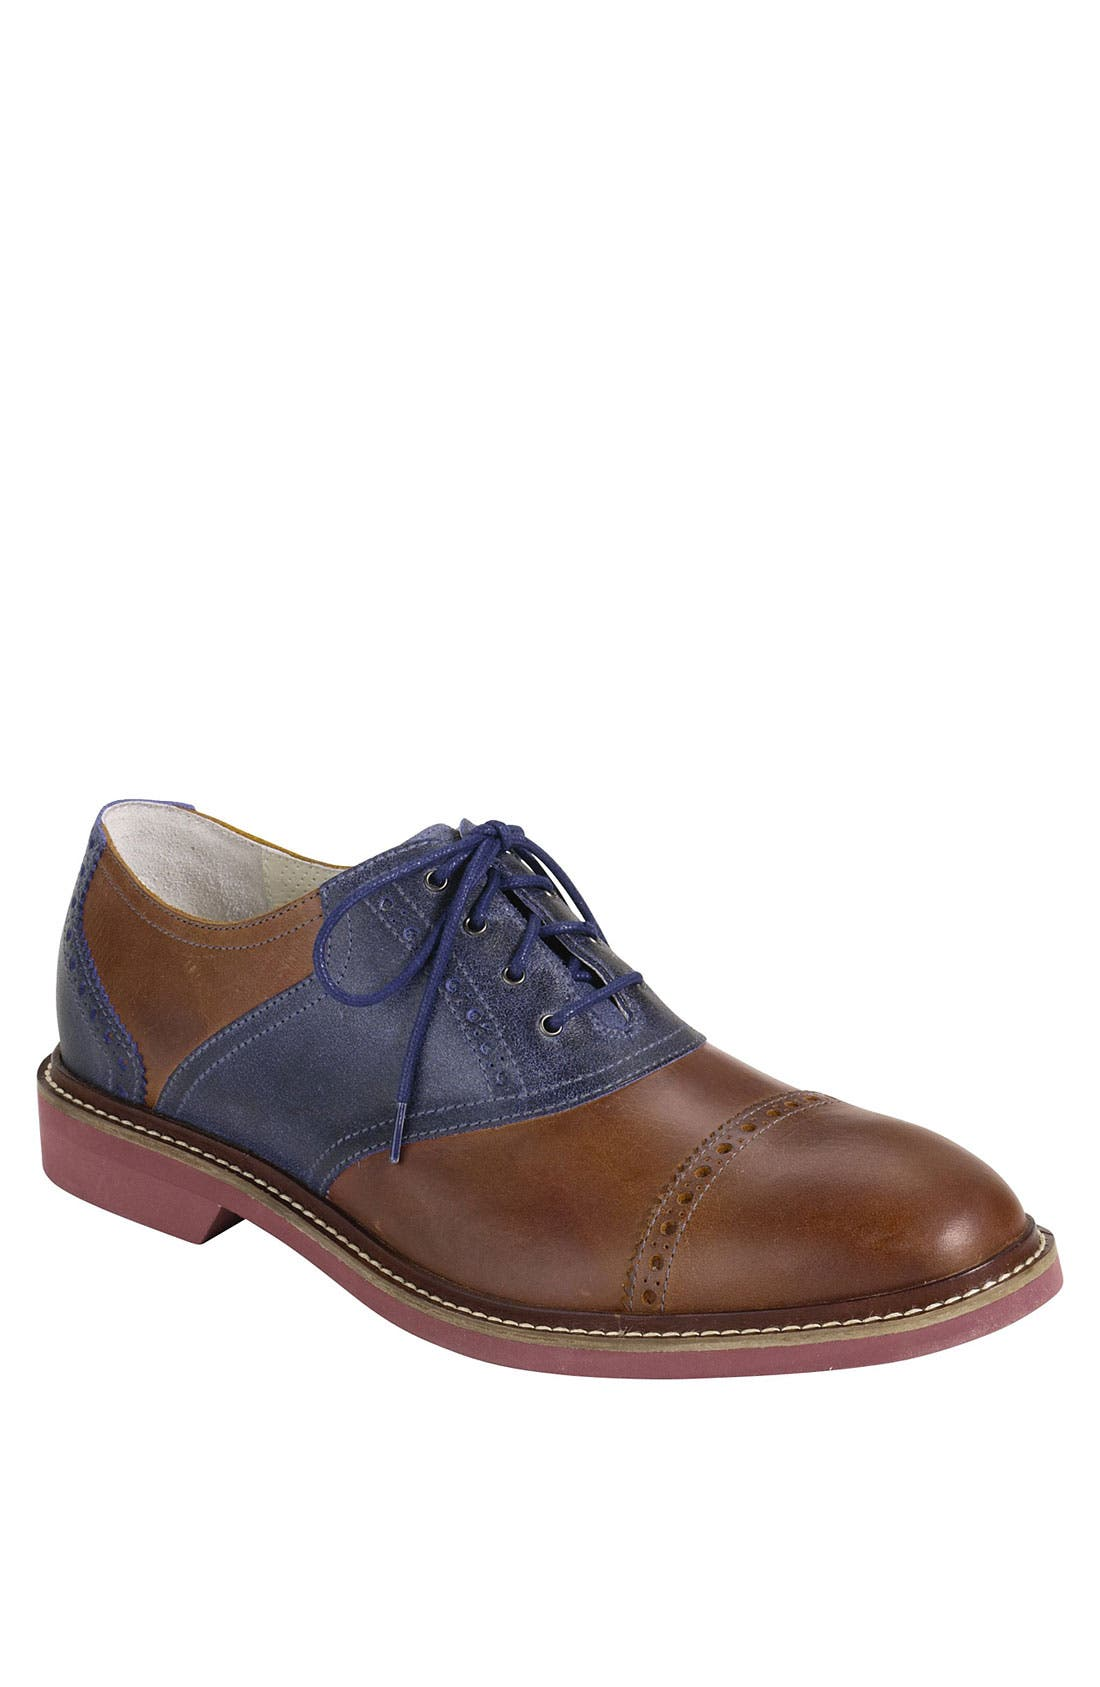 Alternate Image 1 Selected - Cole Haan 'Air Franklin' Saddle Oxford